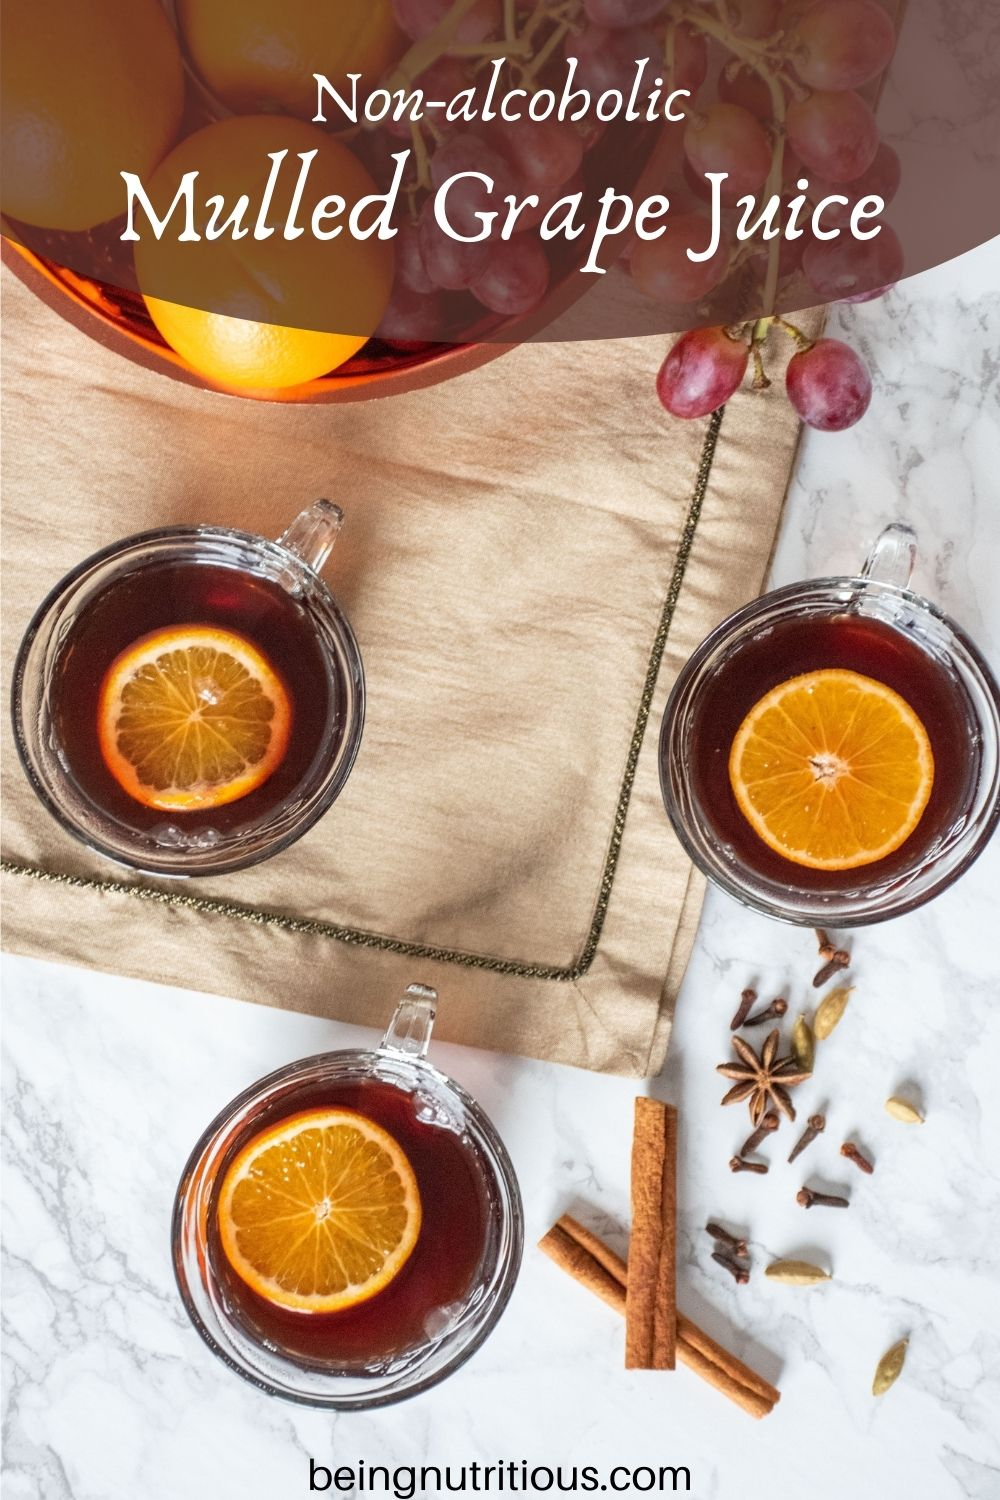 Overhead shot of 3 small glass mugs filled with mulled grape juice, each with an orange slice in them. Text overlay: Non-alcoholic Mulled Grape Juice.